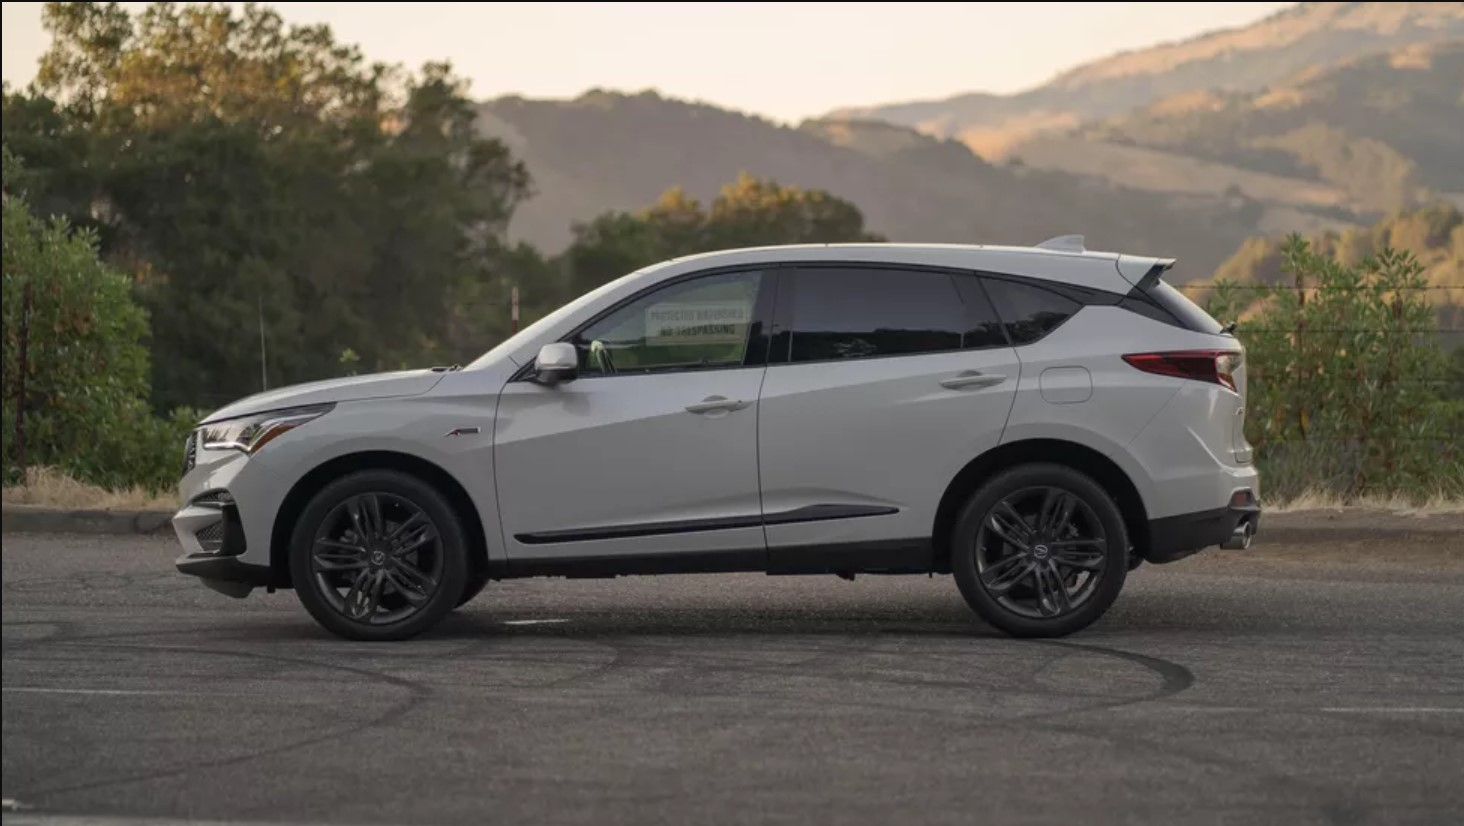 2021 Acura RDX A-Spec Specifications